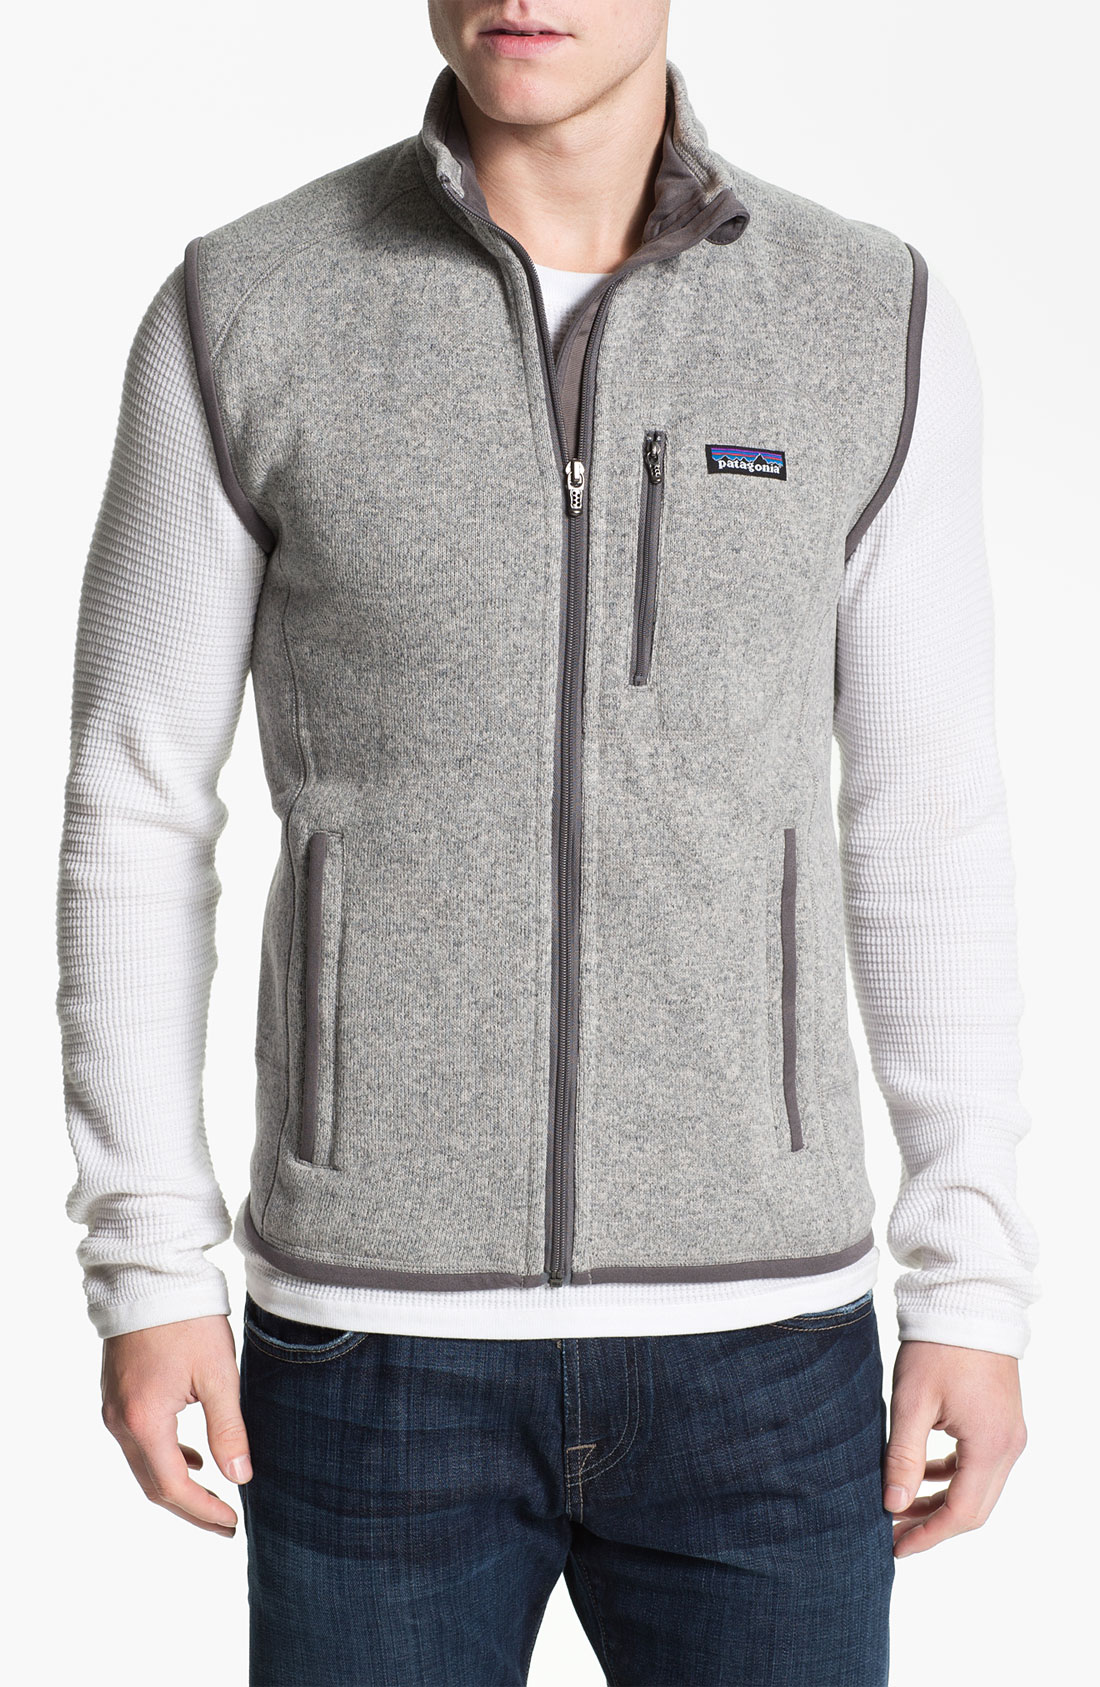 Patagonia Better Sweater Grey Vest - English Sweater Vest